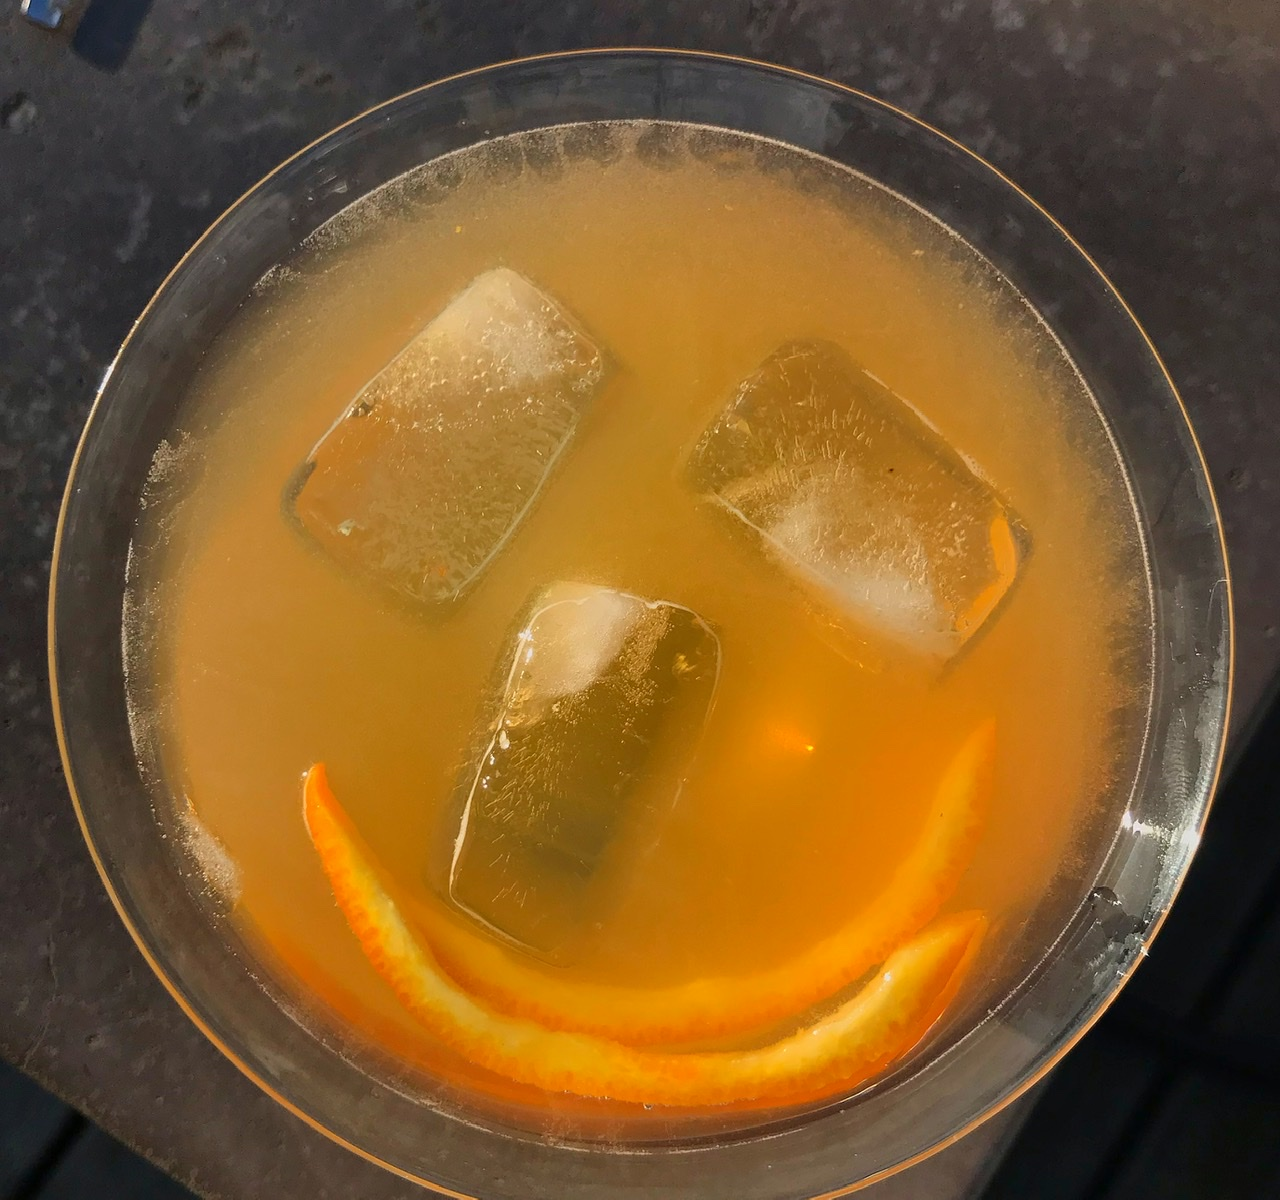 summer's coming - first drink